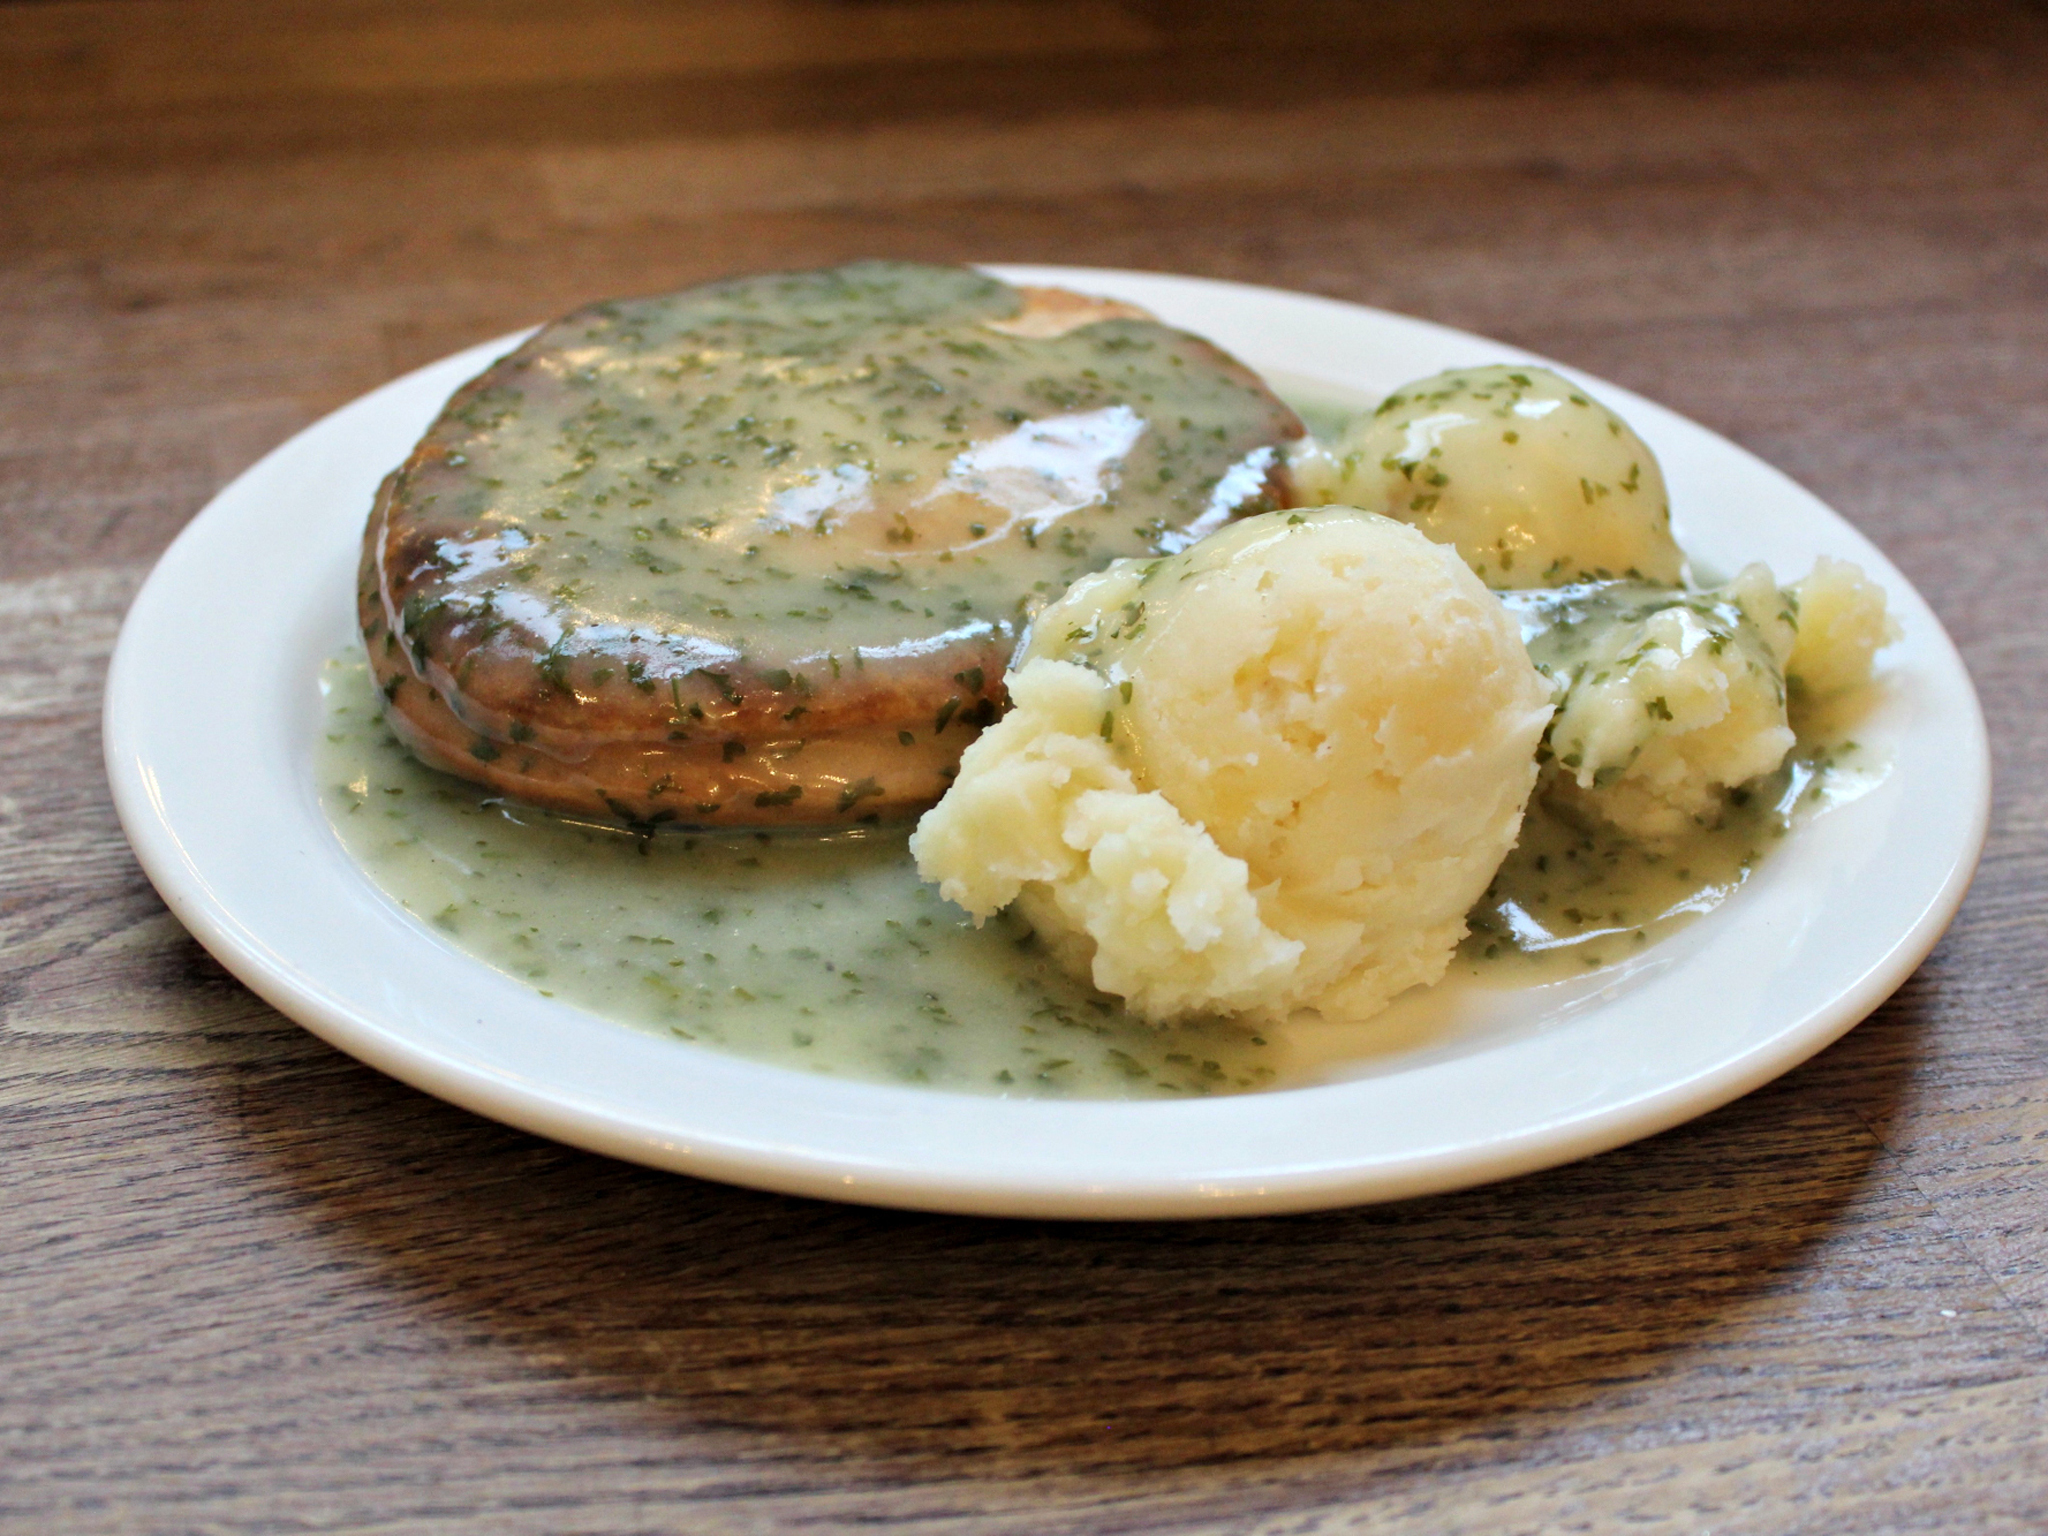 London's best pie and mash shops, Goddards of Greenwich